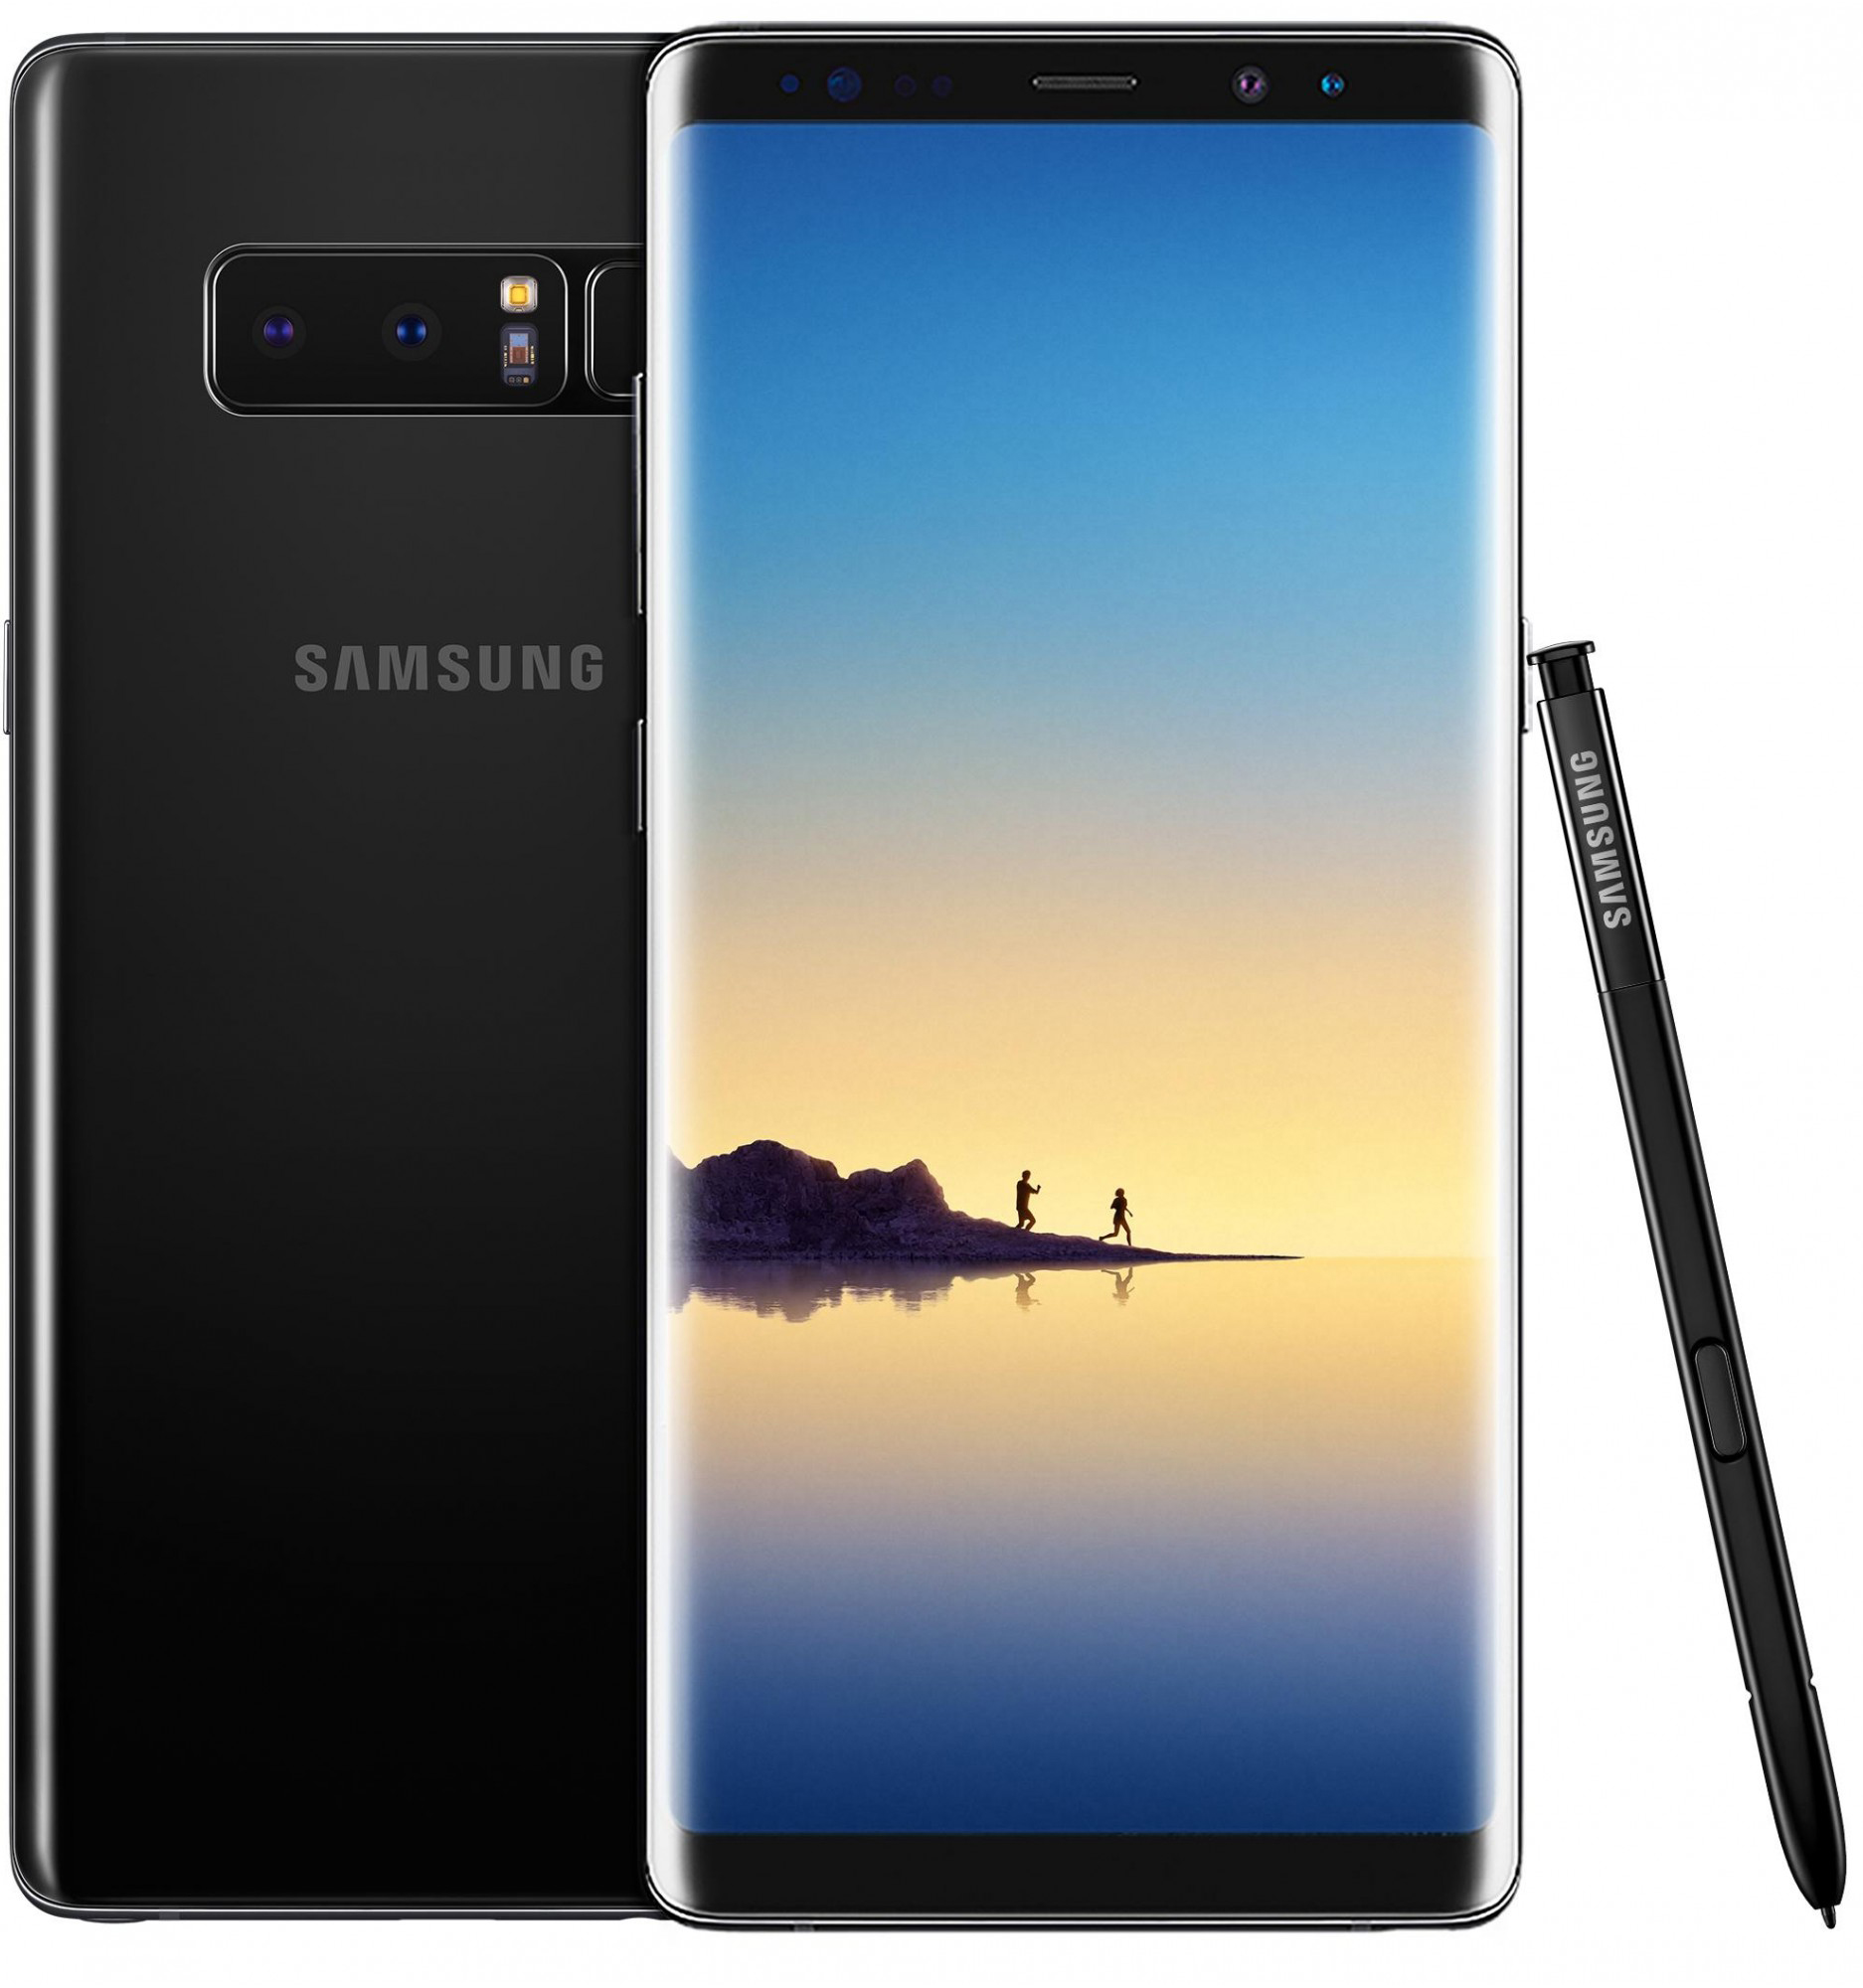 Samsung Galaxy Note 8 64GB Black (SM-N950FZKD) UA UCRF